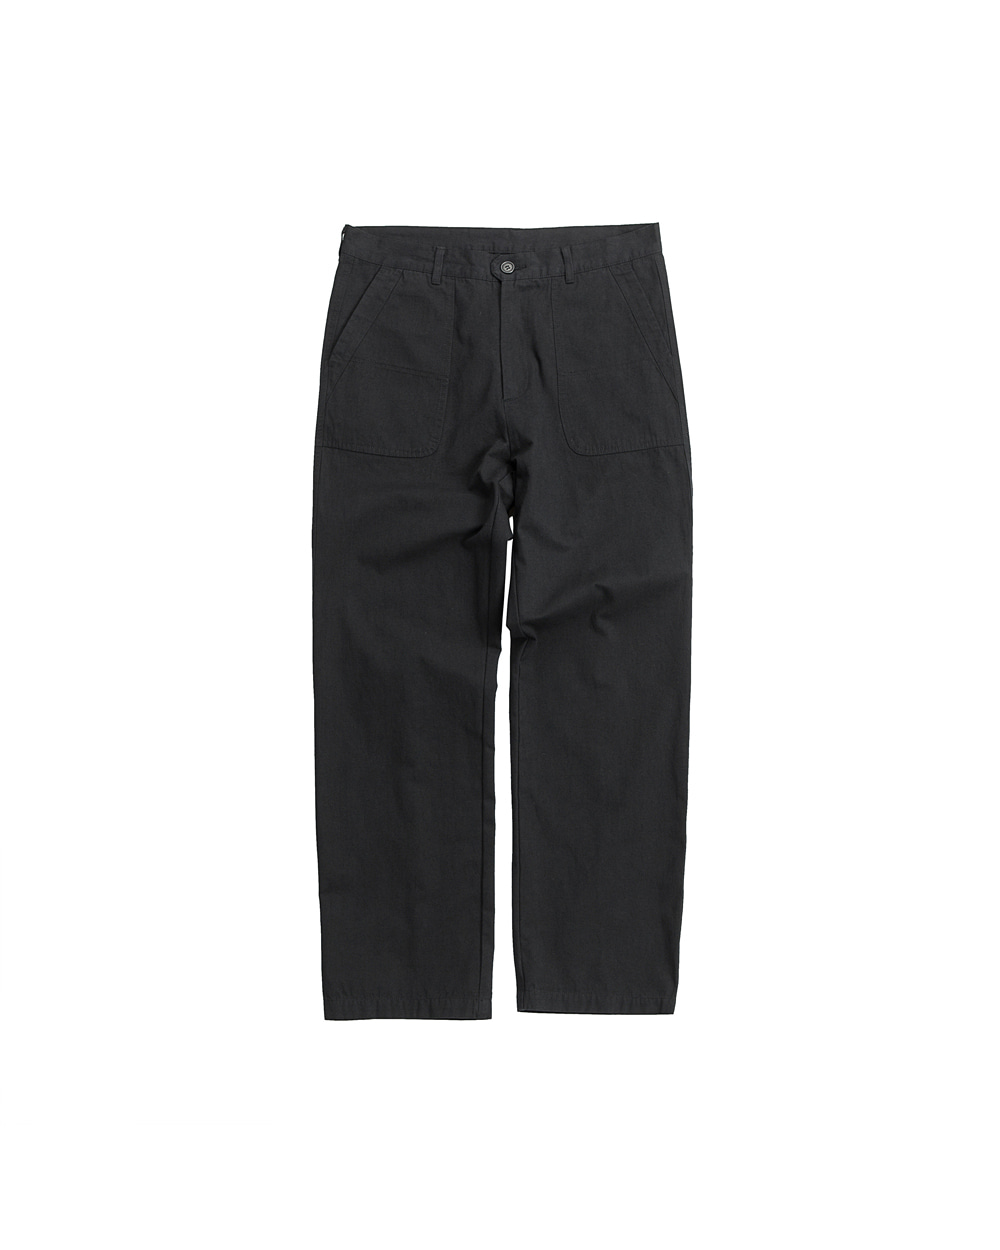 RISKABAT WORK PANTS BLACK